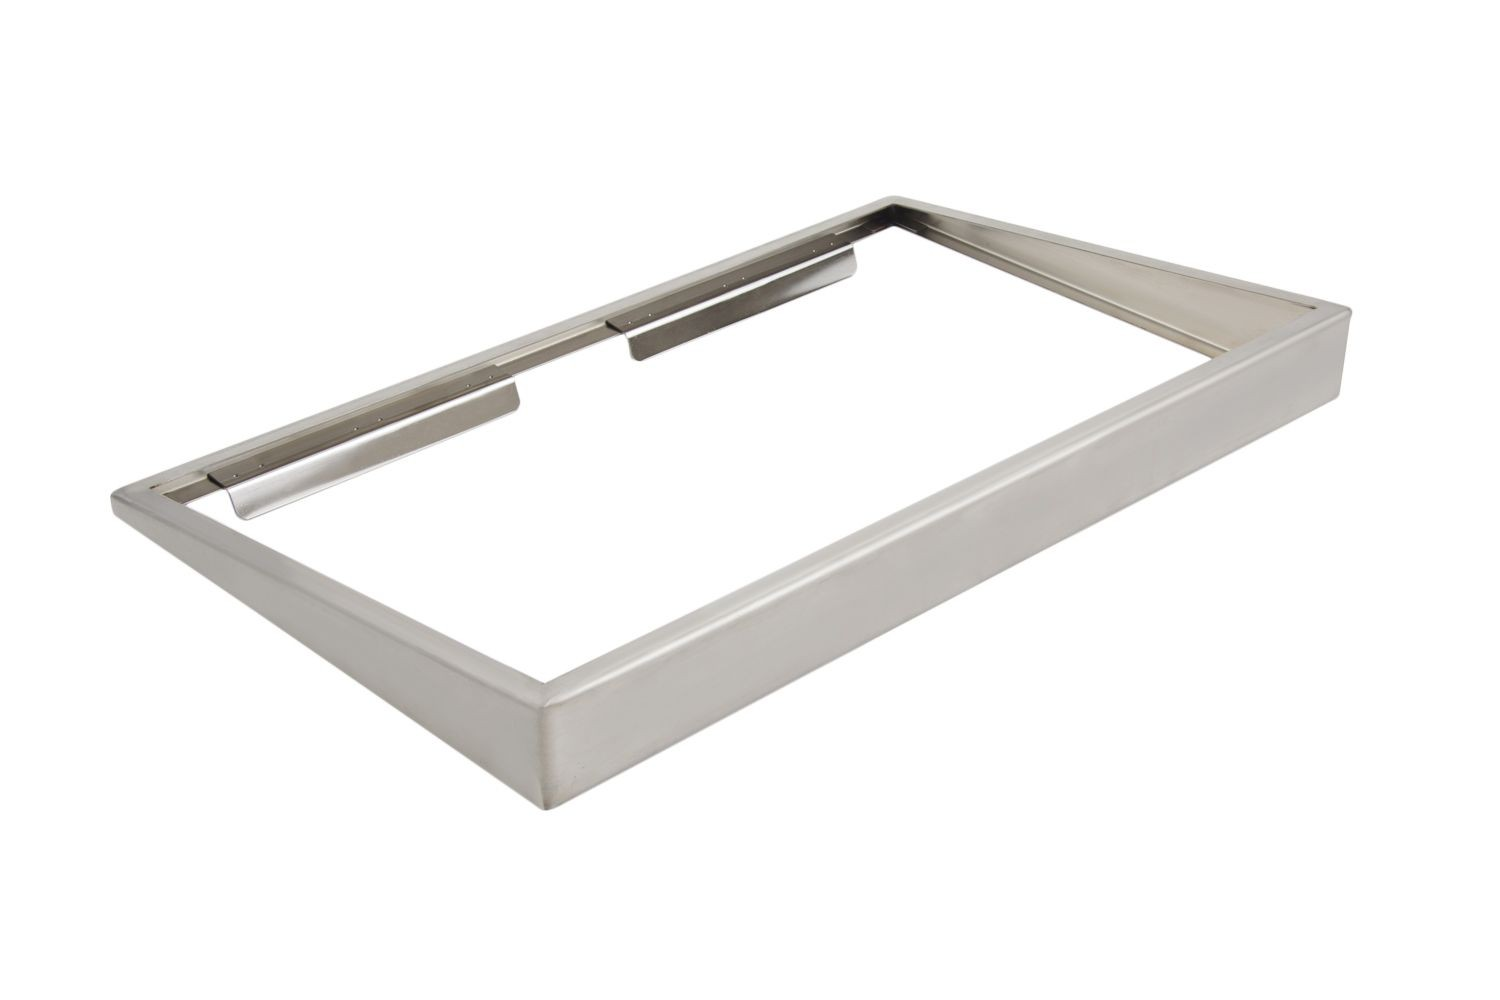 "Bon Chef 9716 Stainless Steel Side Riser, 13 1/8"" x 21 1/2"" x 2 3/4"""